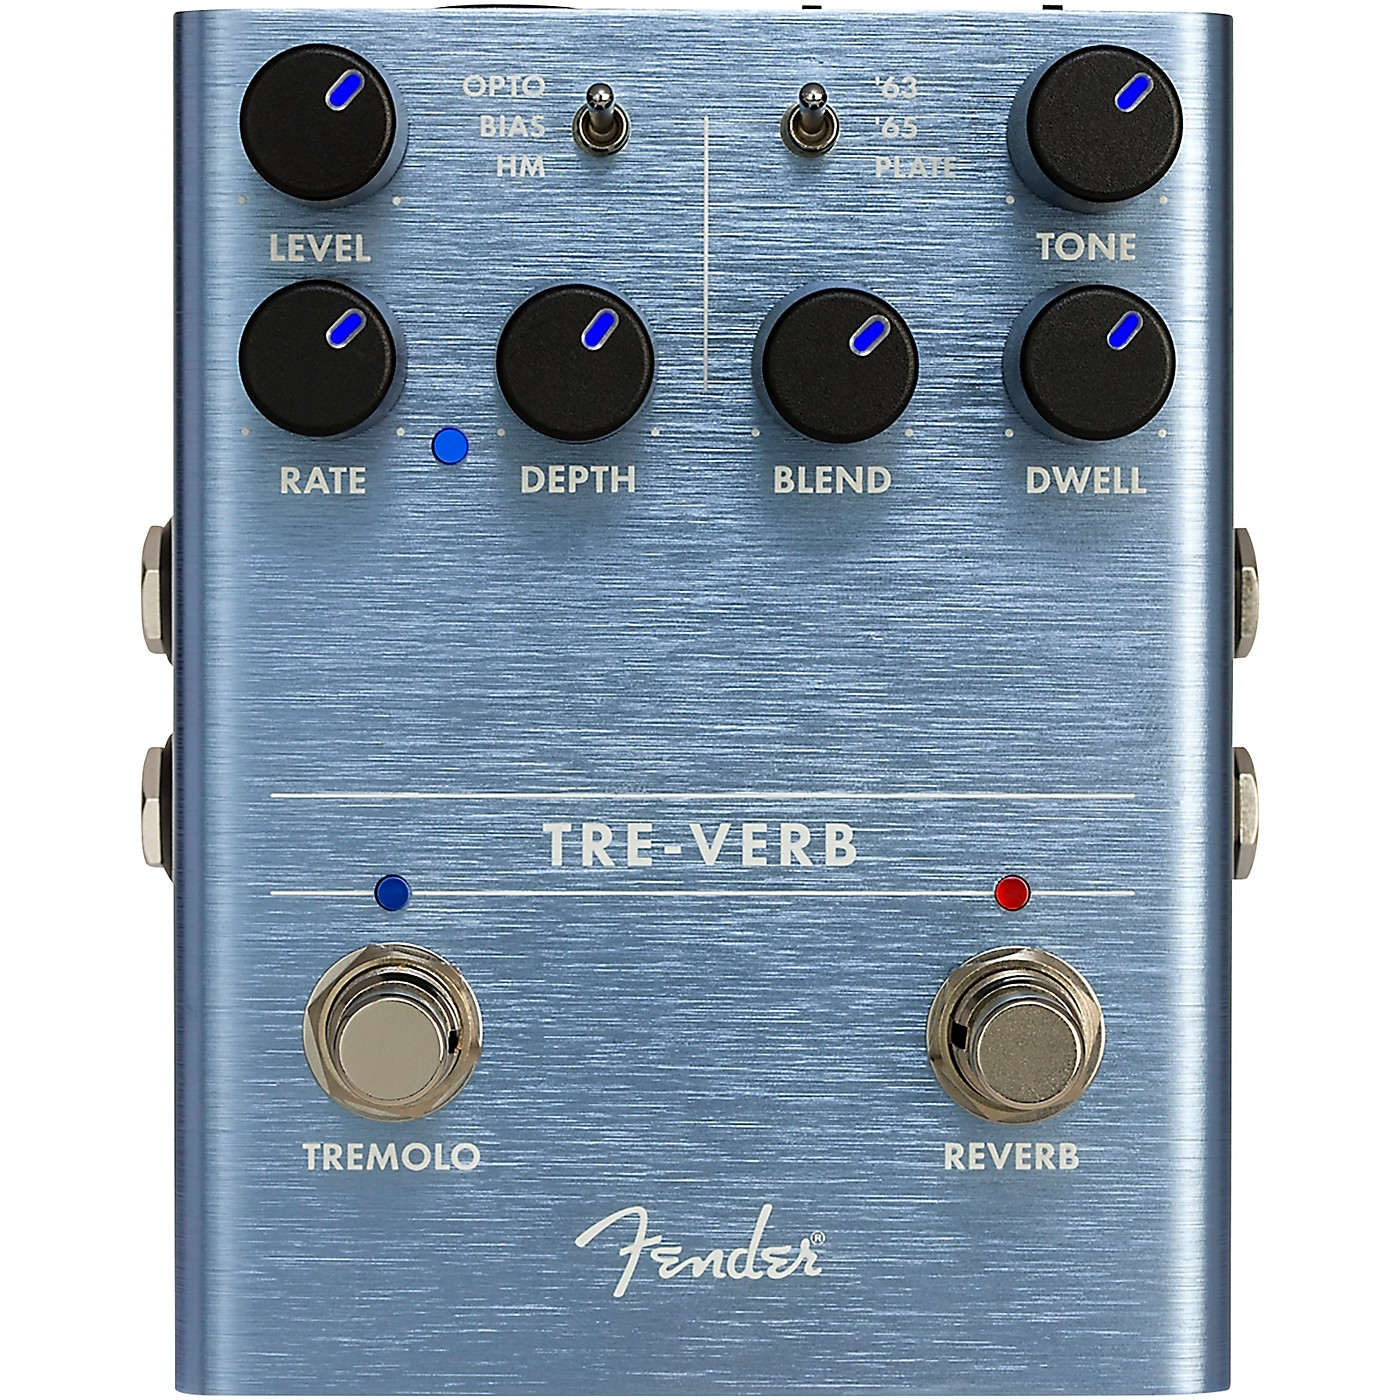 Fender Tre-Verb Digital Tremolo and Reverb Effects Pedal thumbnail